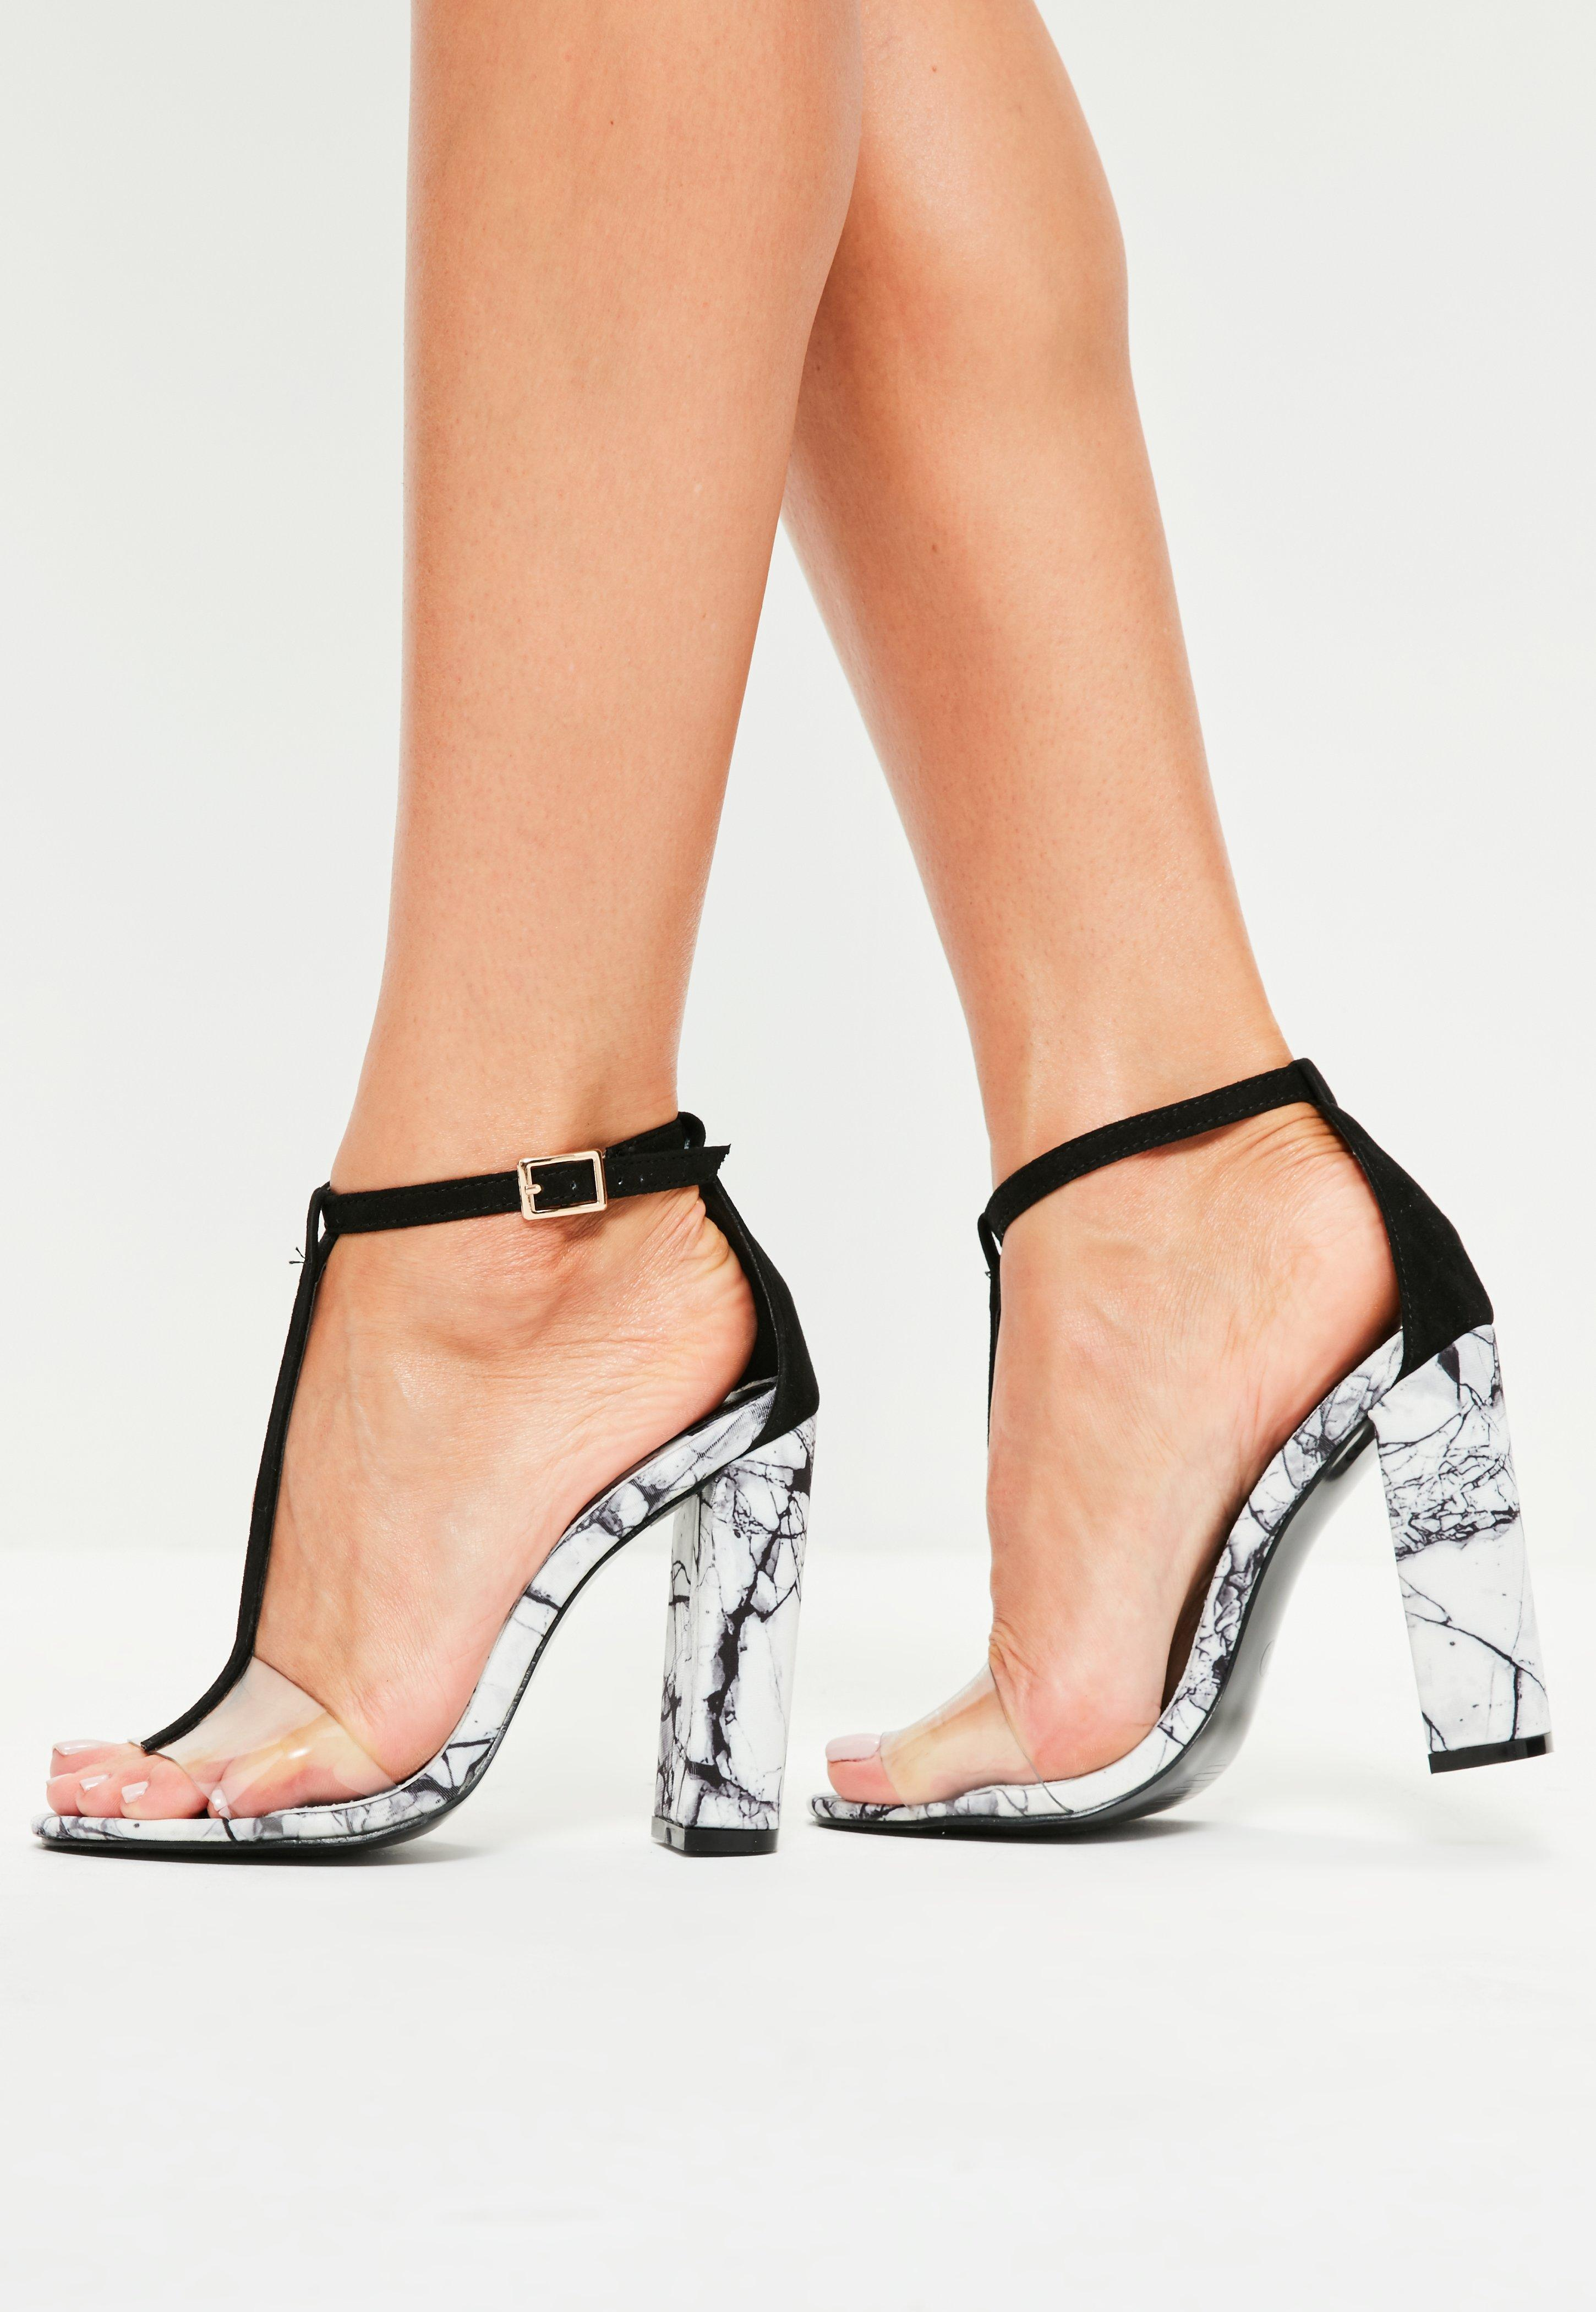 Lyst - Missguided Black Marble Finish T-bar Heeled Sandals in Black